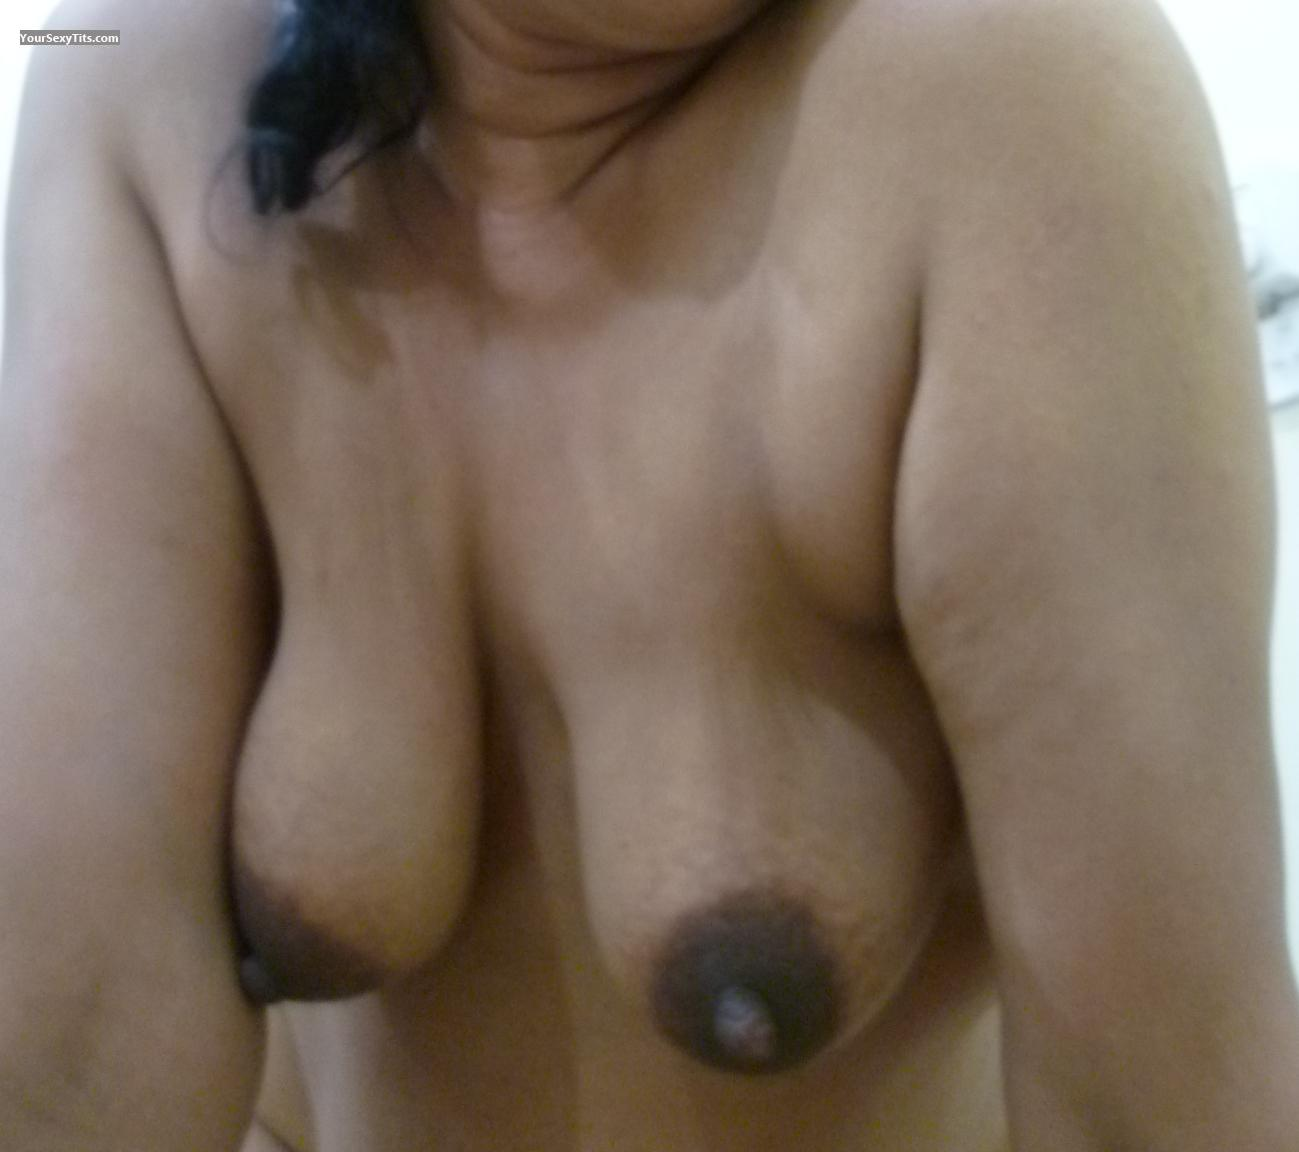 Medium Tits Of My Wife Hot Bitch